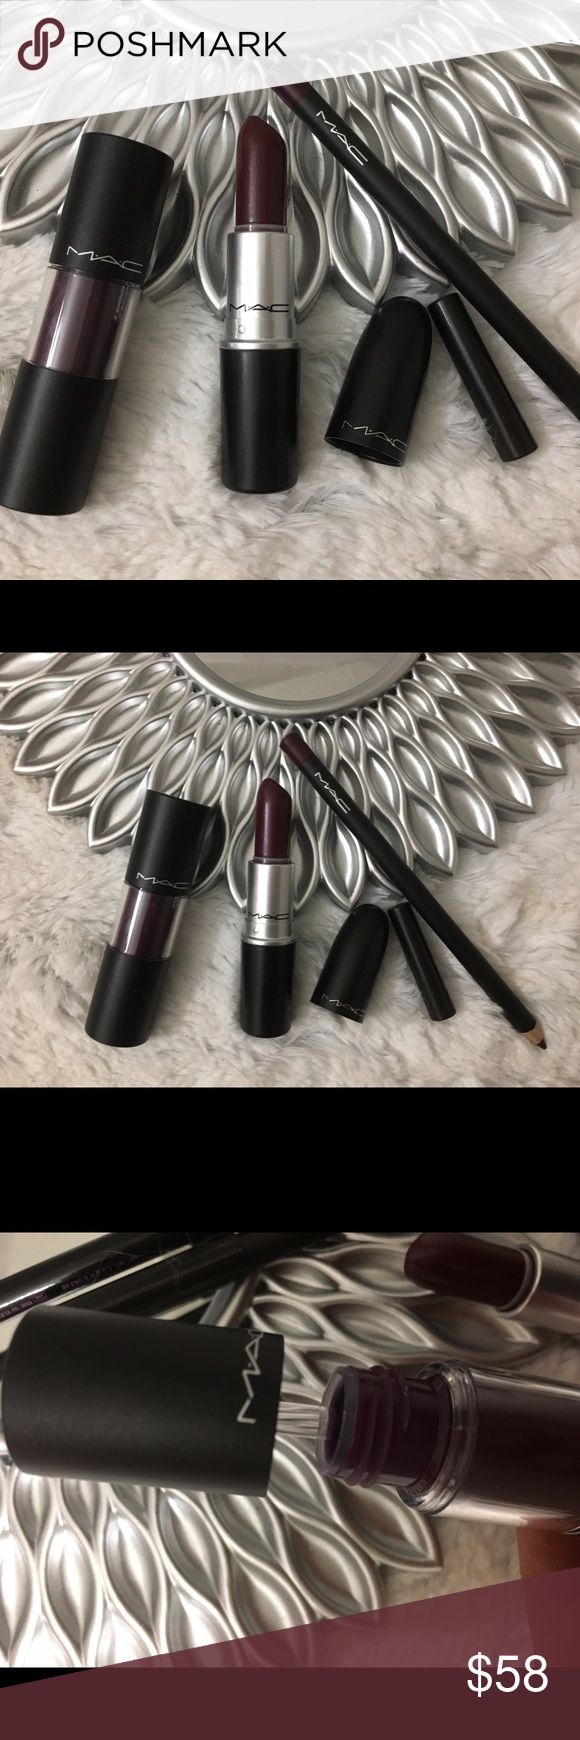 """💯✨Mac x3 bundle!Versicolor /vino lipliner/hangup New Mac bold lip bundle versicolor lip stain longwear in shade """"perpetual holiday """" Bnib /vino lipliner bnnb / hangup lipstick nnt from pro kit shaved and sprayed with oshe medical grade spray never used . Refer to pictures nobreturns on makeup listings ) please !Offer or bundle for deal ! I'm a top trusted 5✨rated makeup seller ! 400 + love notes 19k follwers 🎉✨I  also send juicy gifts ! And package professionally ! Offer or bundle and I…"""